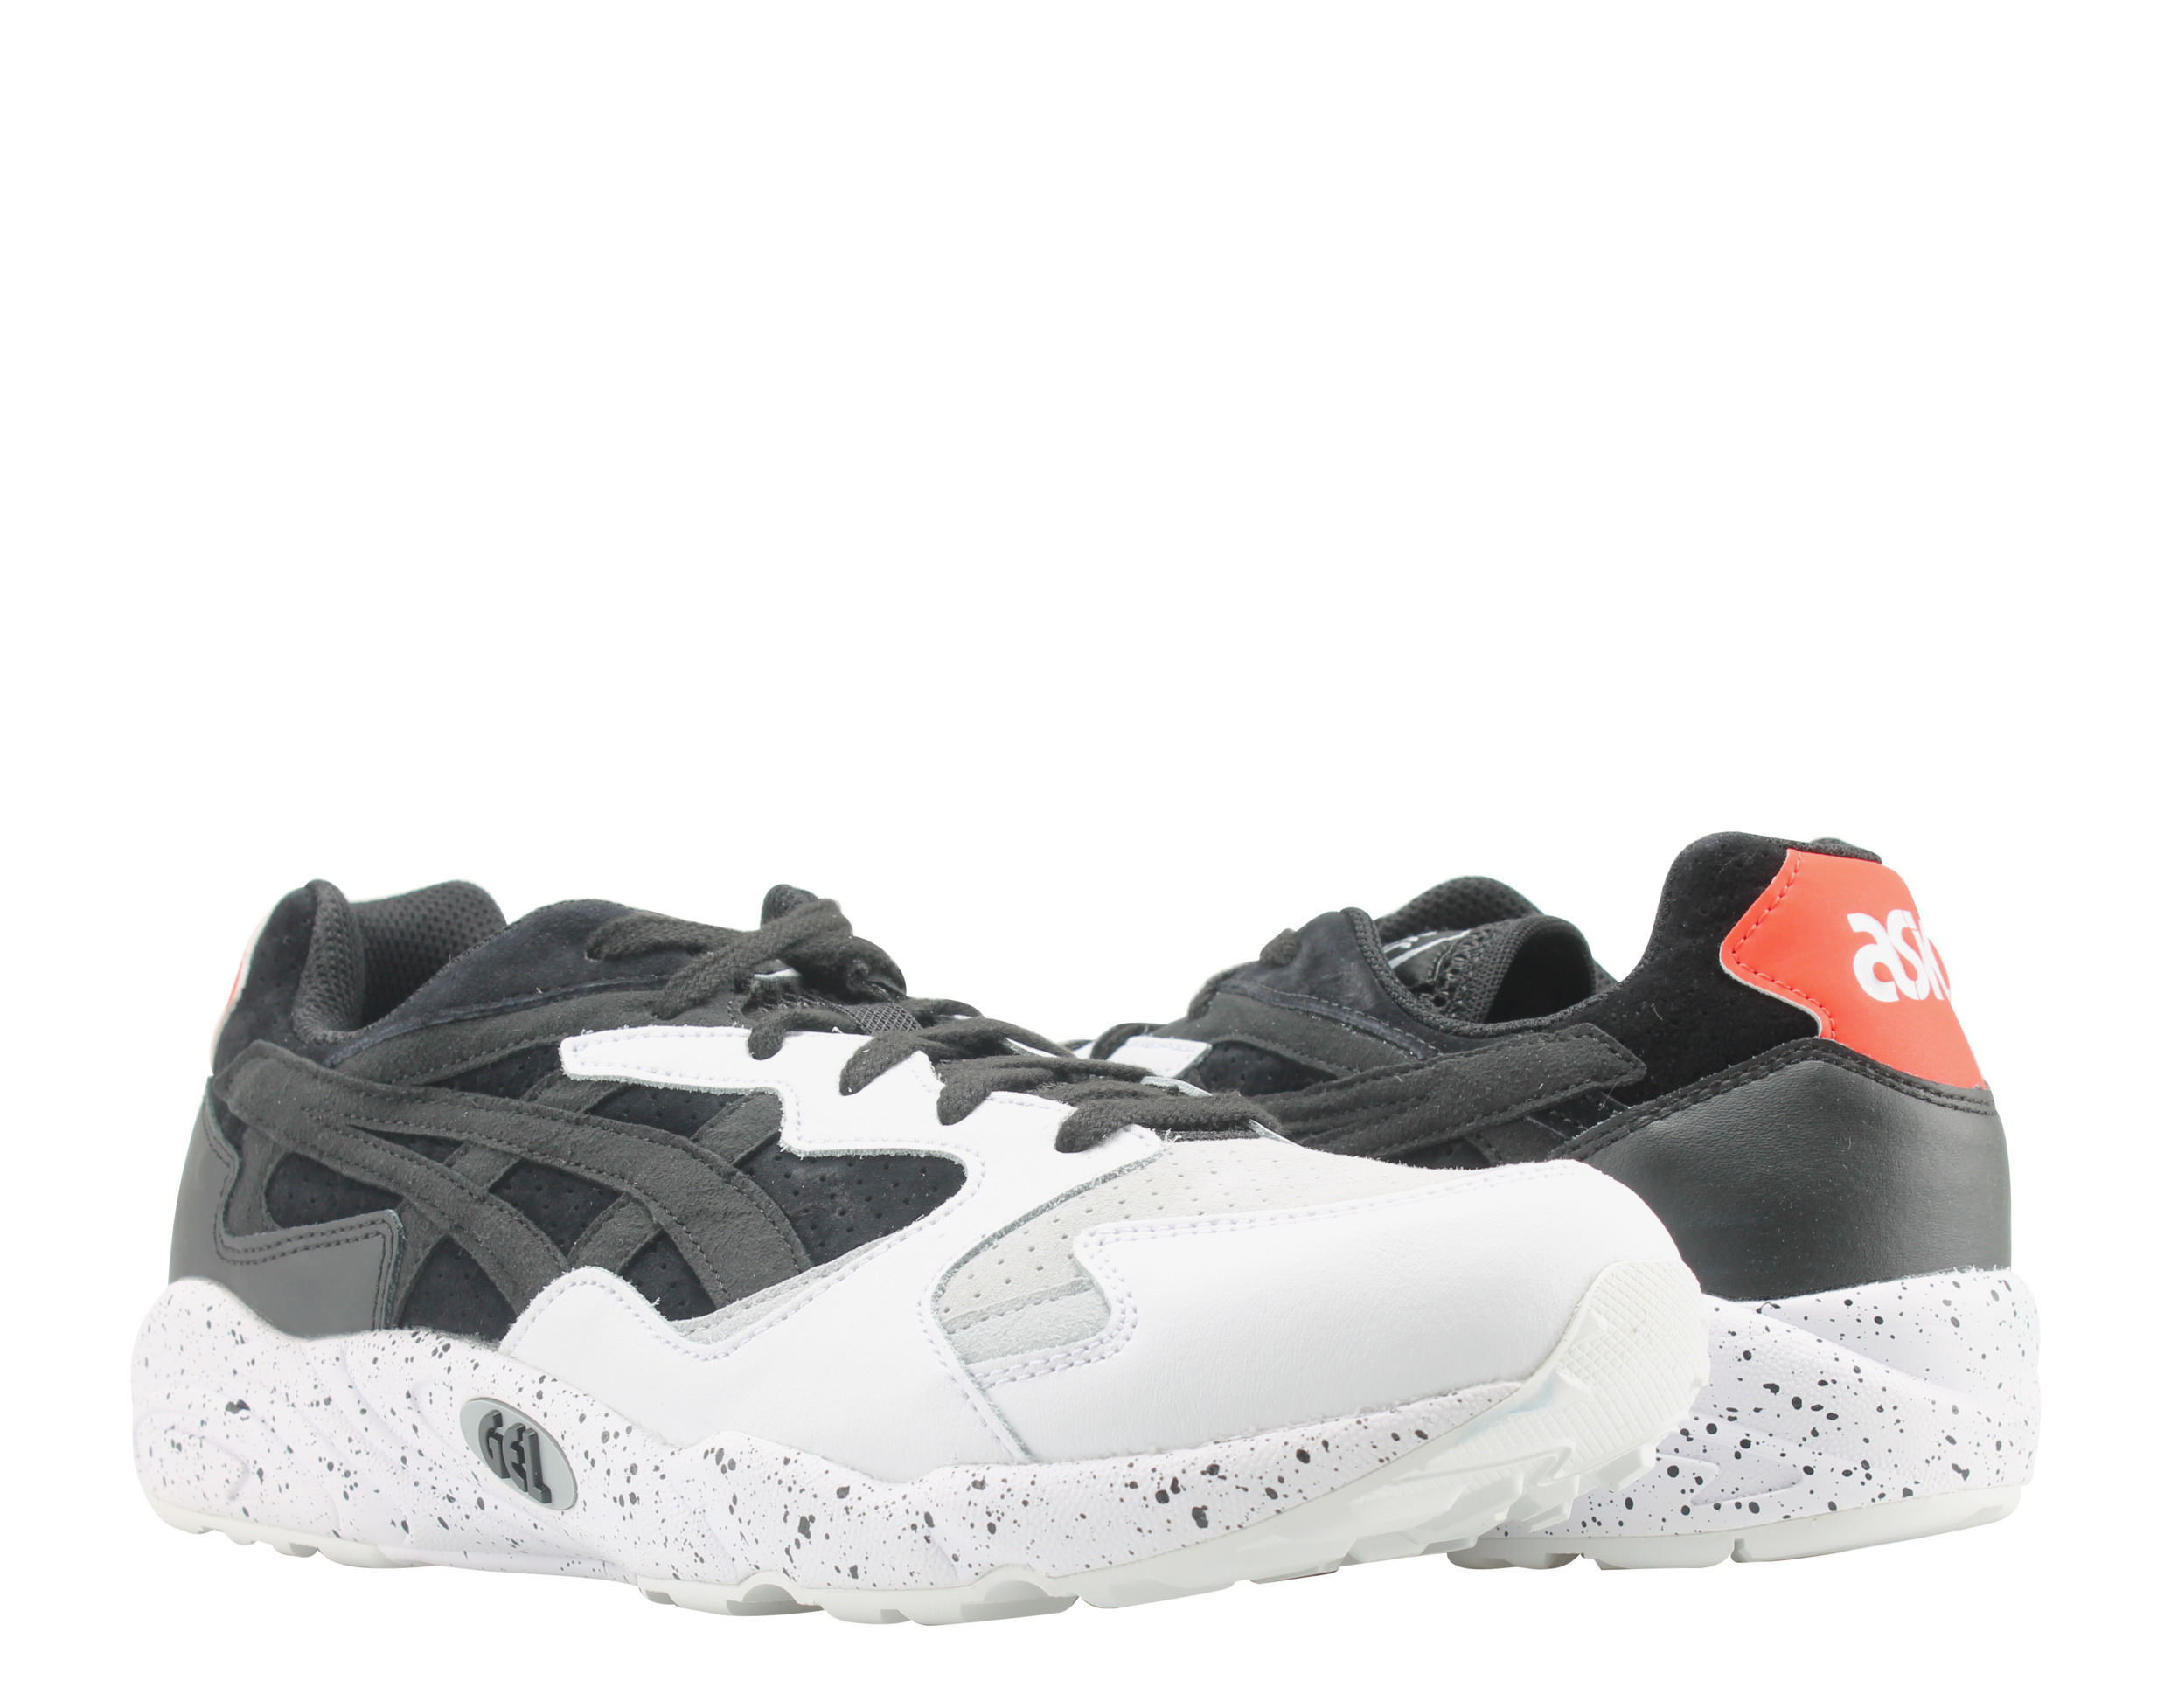 Asics Gel-Diablo Black White Oreo Men's Running Shoes HL7Y3-9090 by